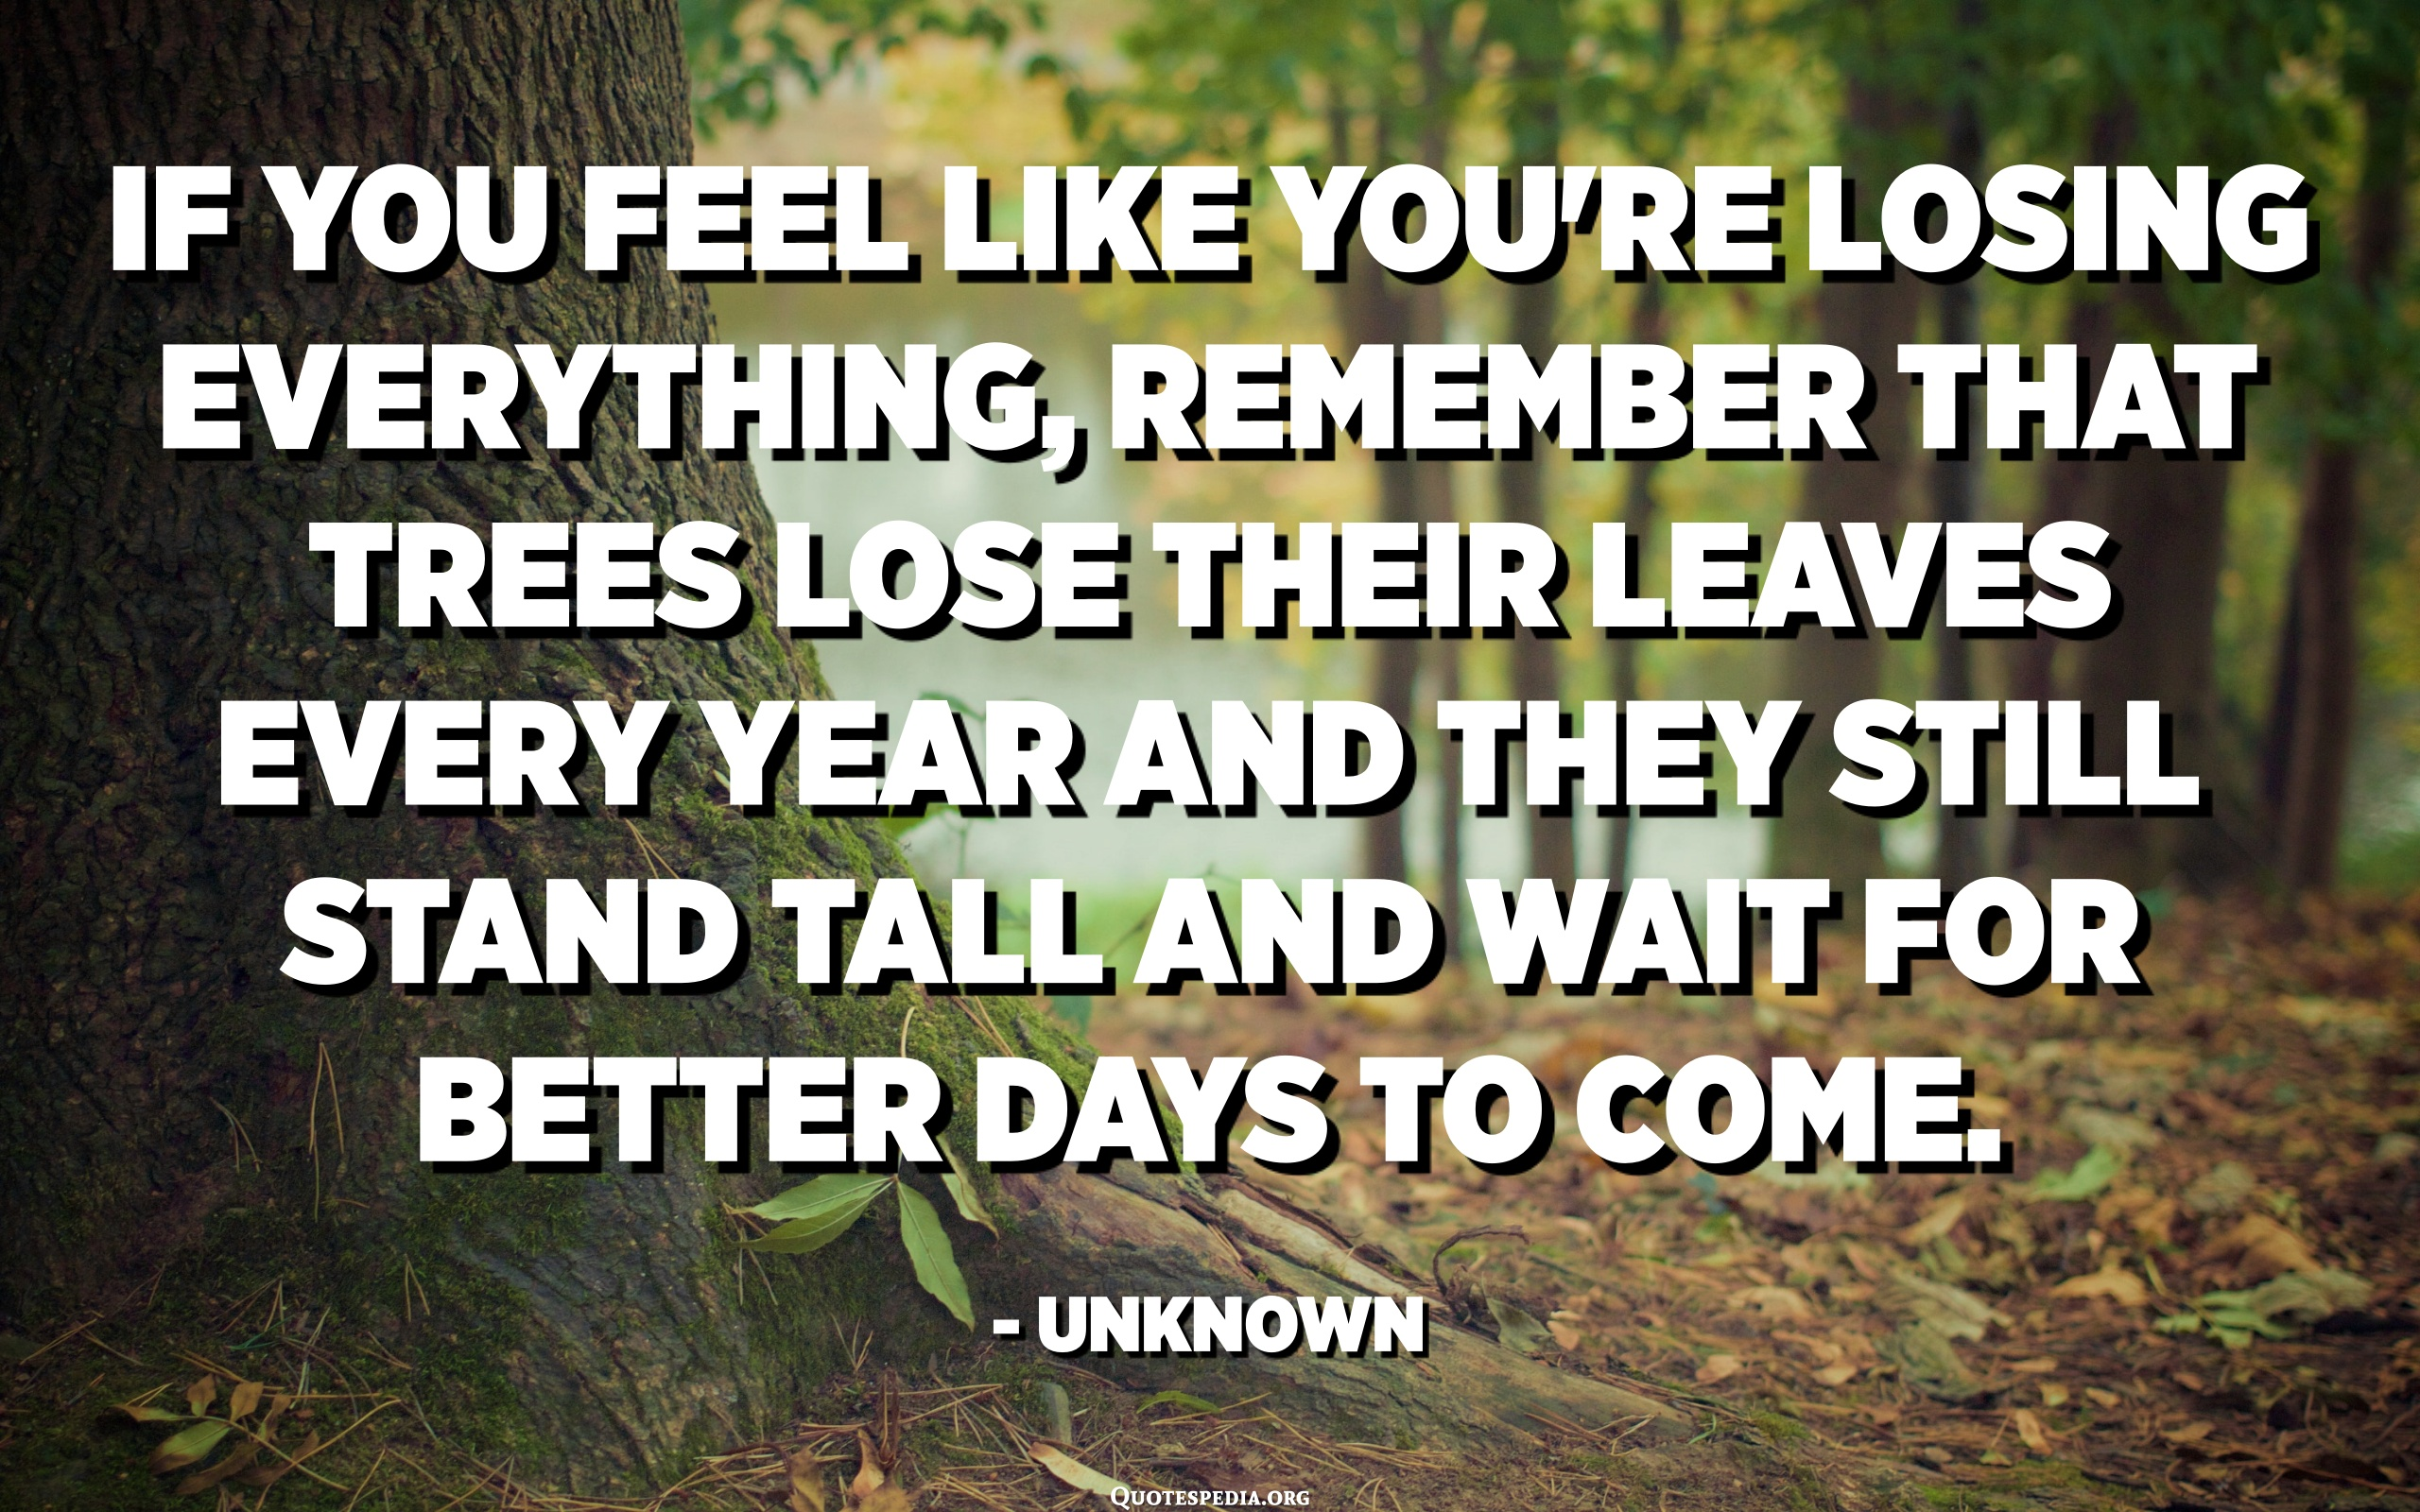 If You Feel Like You Re Losing Everything Remember That Trees Lose Their Leaves Every Year And They Still Stand Tall And Wait For Better Days To Come Unknown Quotes Pedia